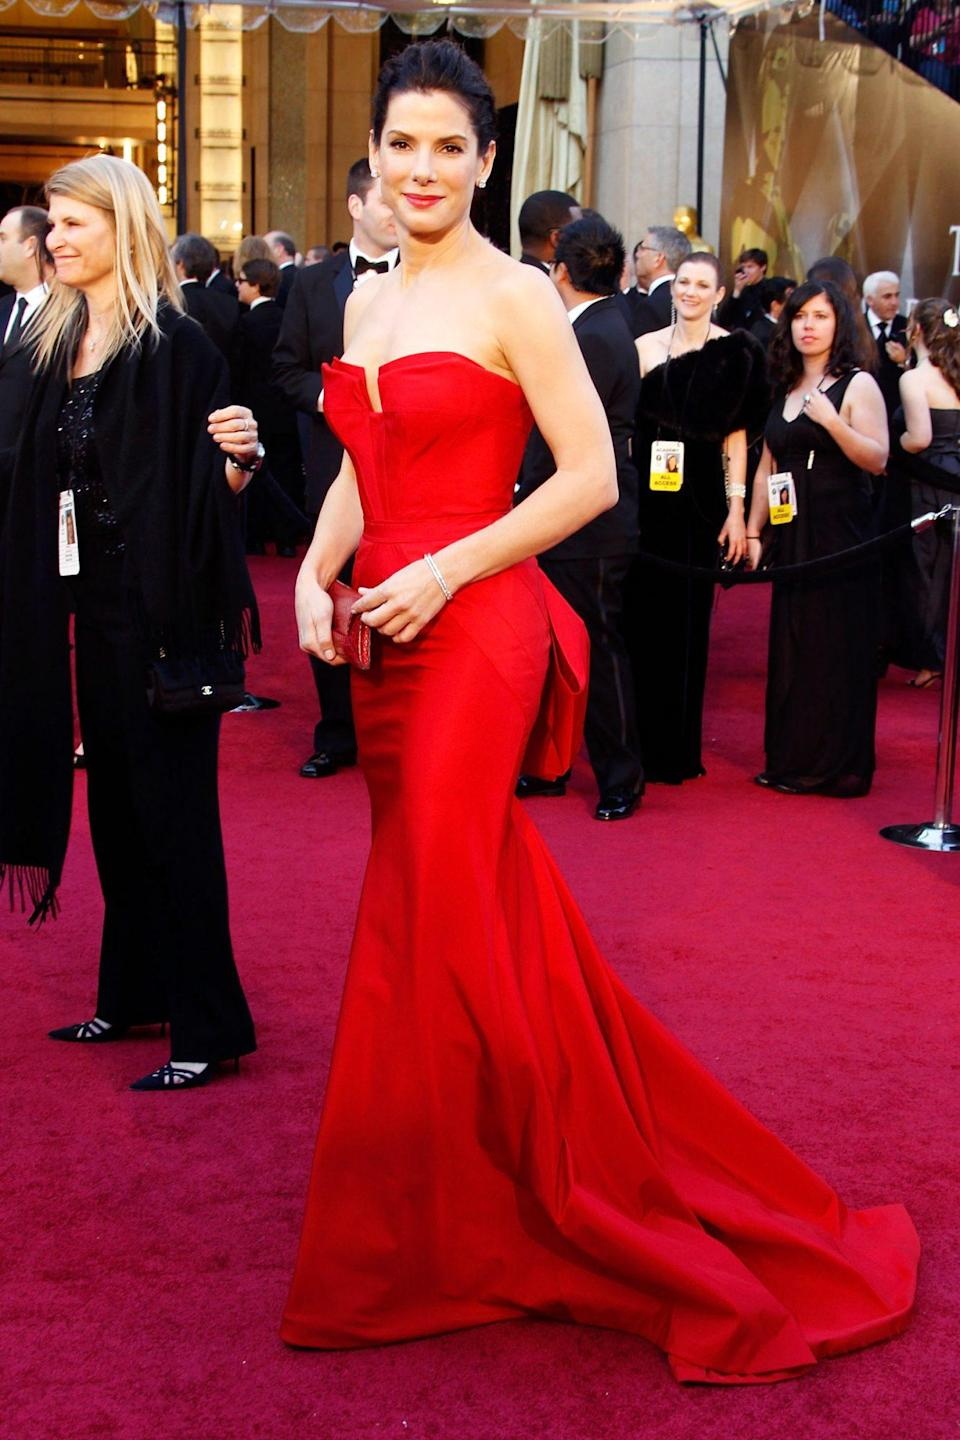 <p>Sandra Bullock — who had taken home her own Academy Award in 2010 for <em>The Blind Side</em> — looked red hot in Vera Wang.</p>